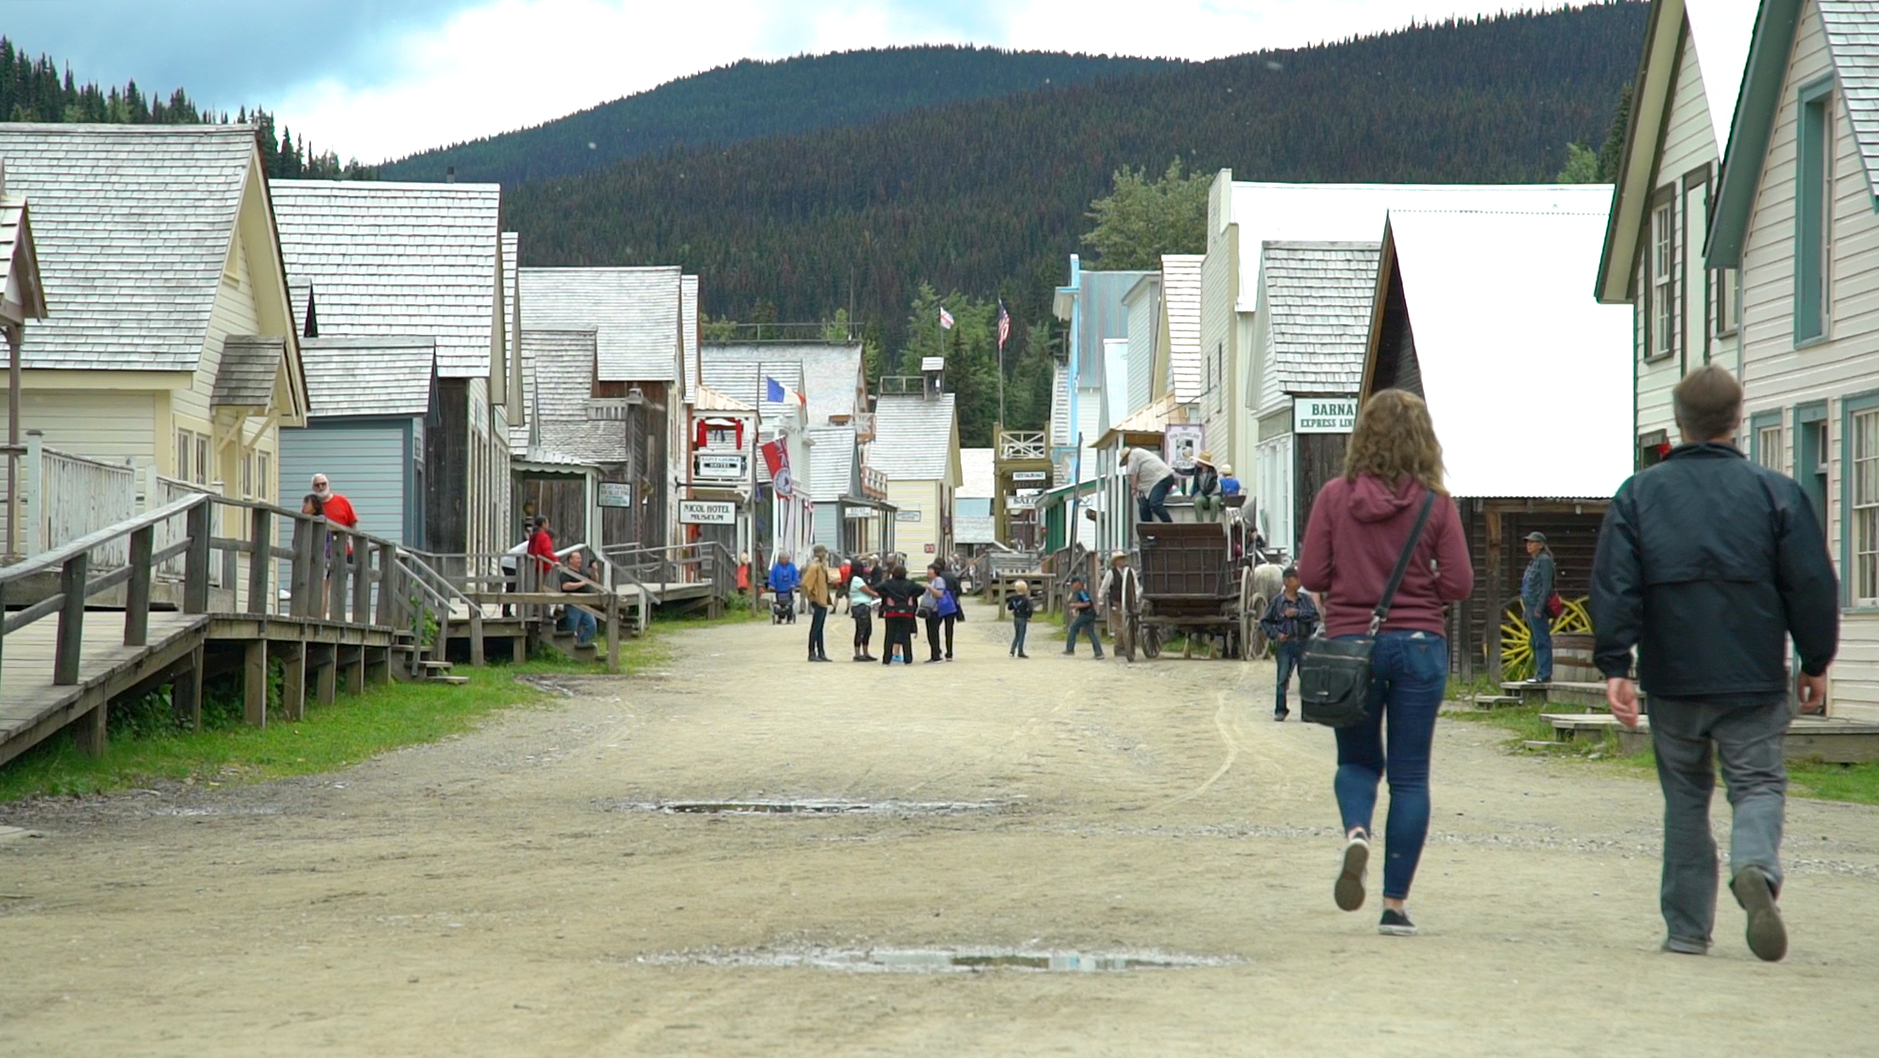 image of people strolling through Barkerville's historic town centre